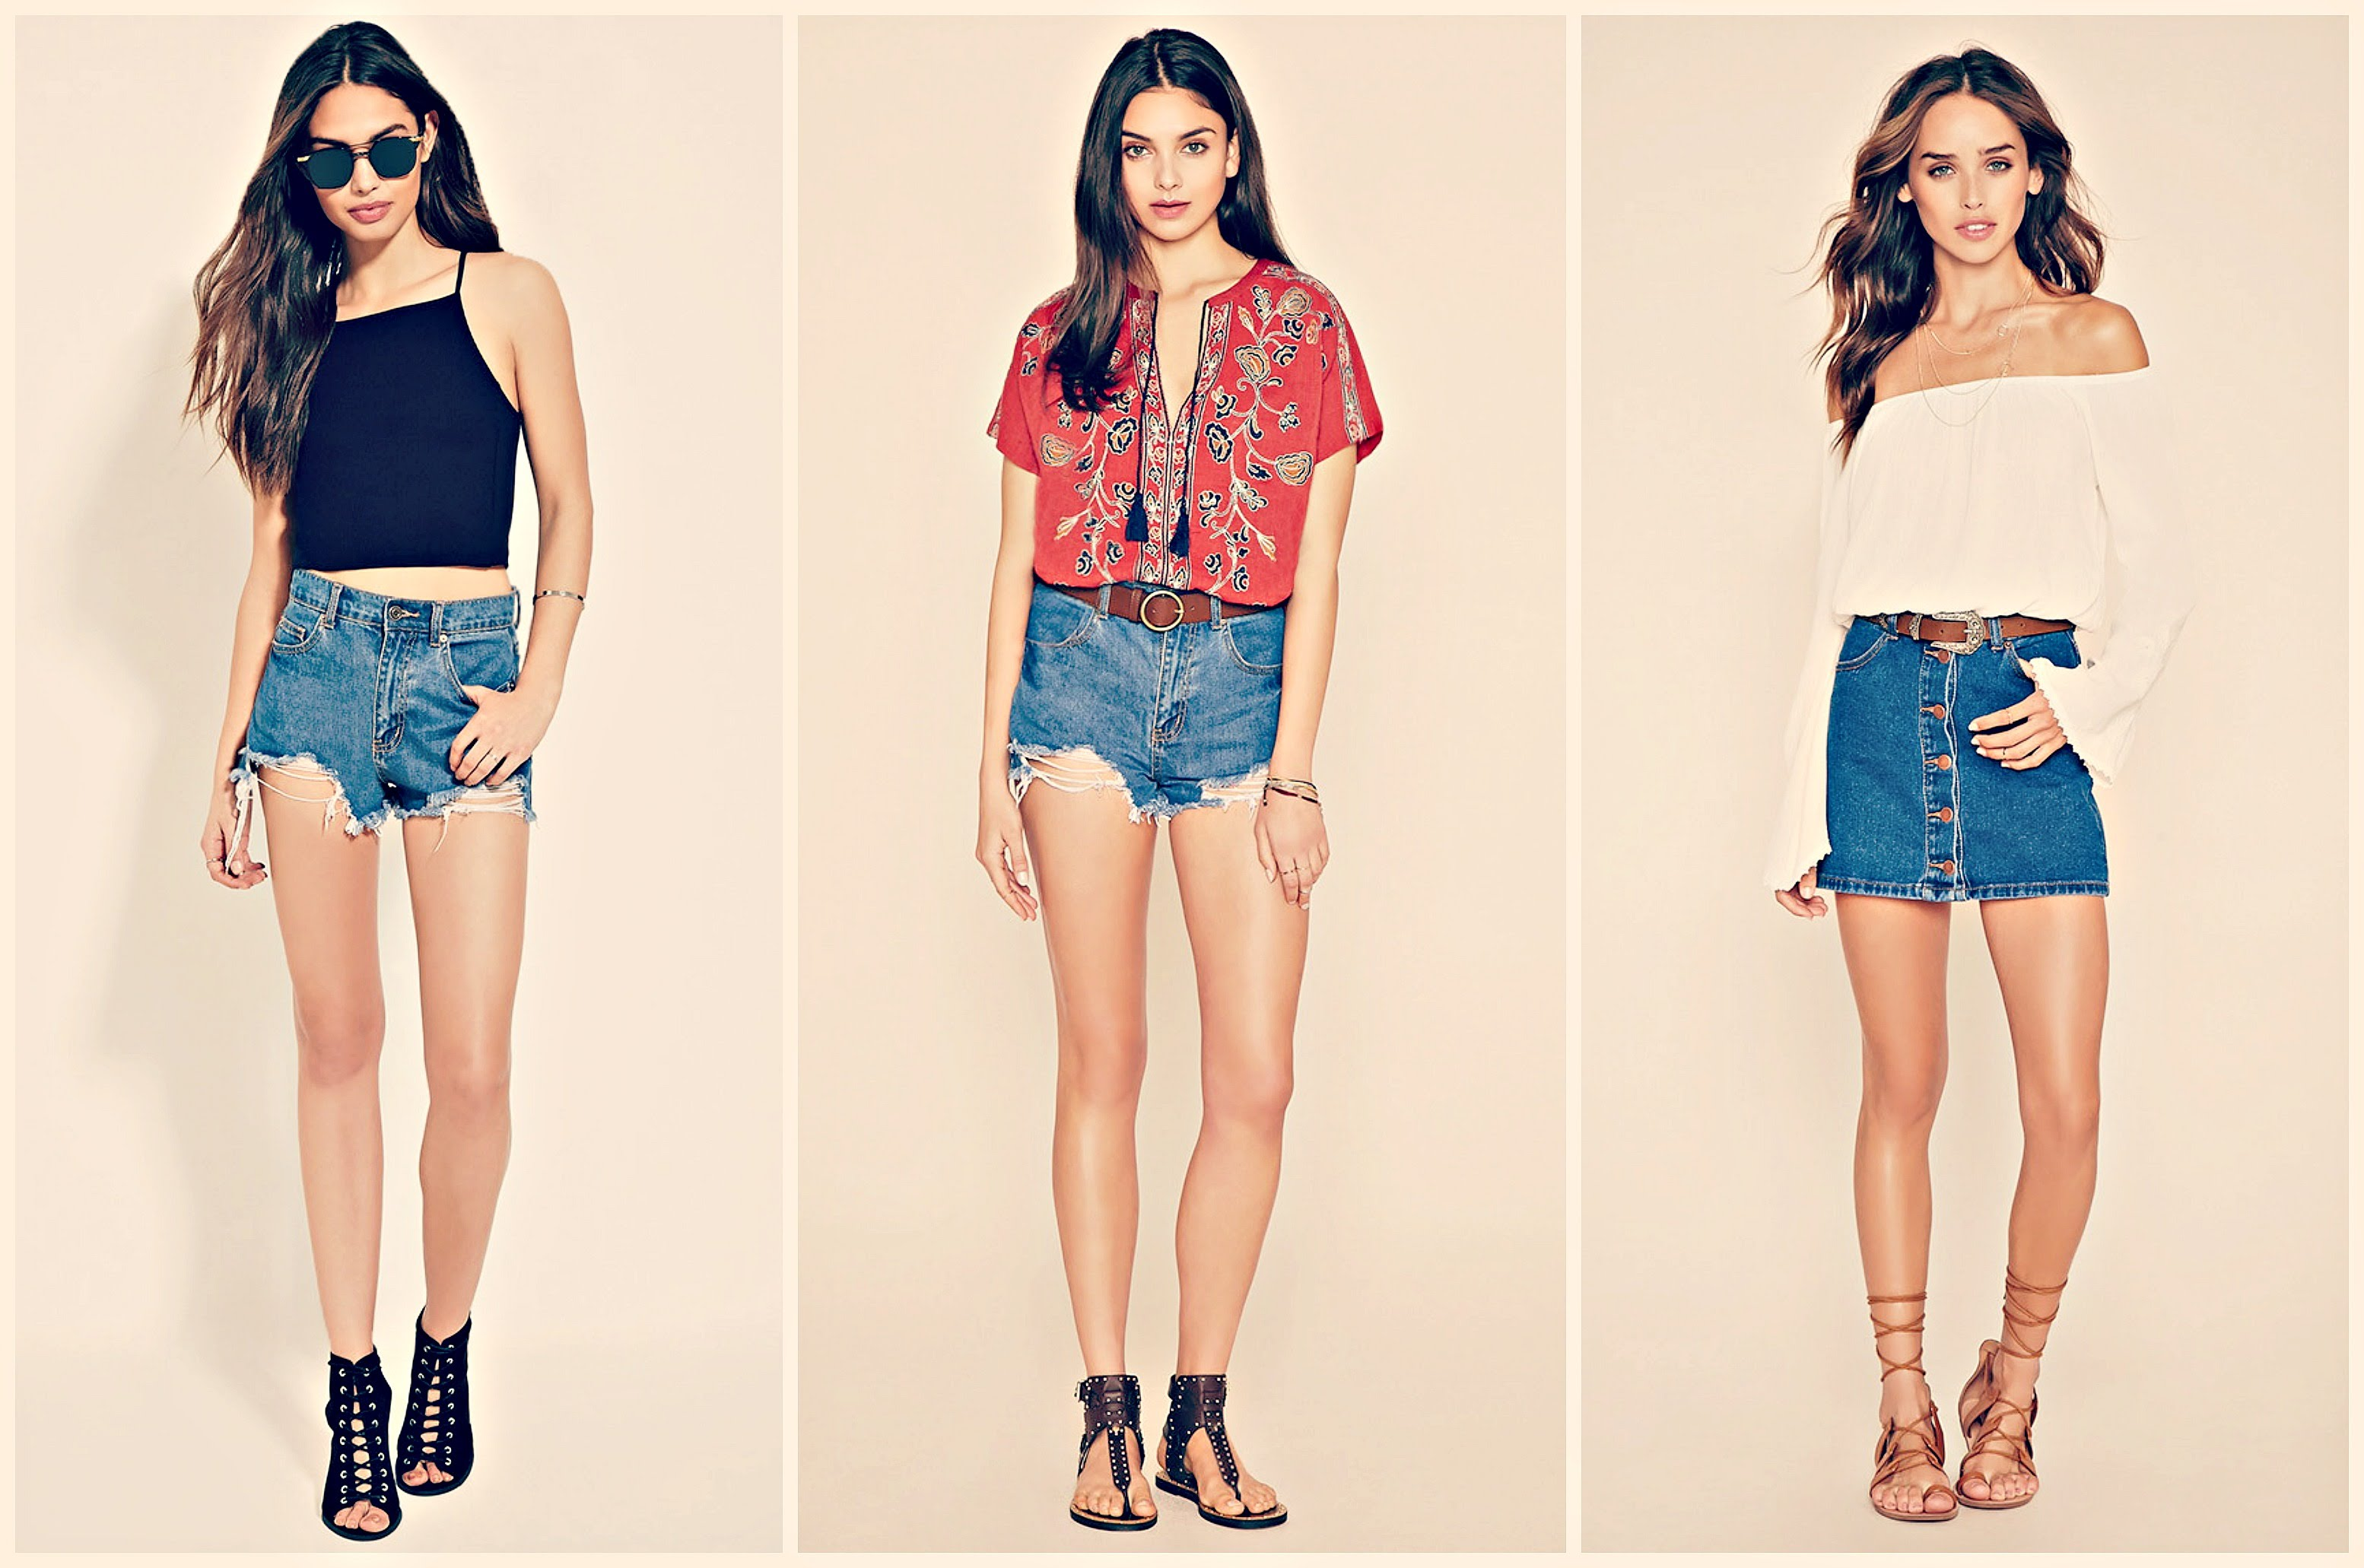 Revamp Your Summer Wardrobe With This Blowout Sale In Def Col Next Week!